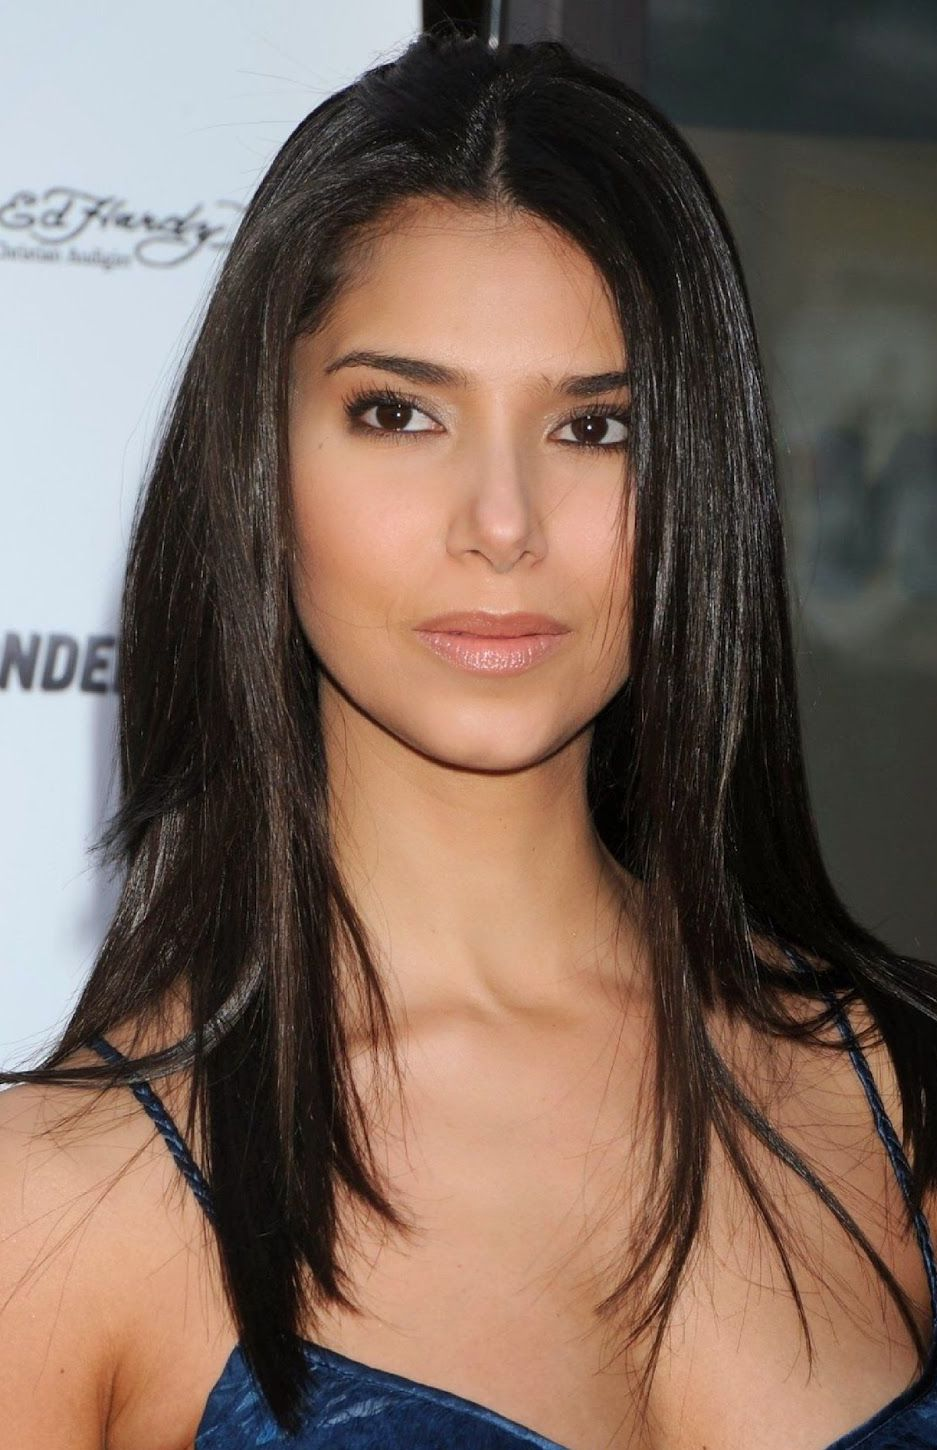 Roselyn Sanchez nude photos 2019